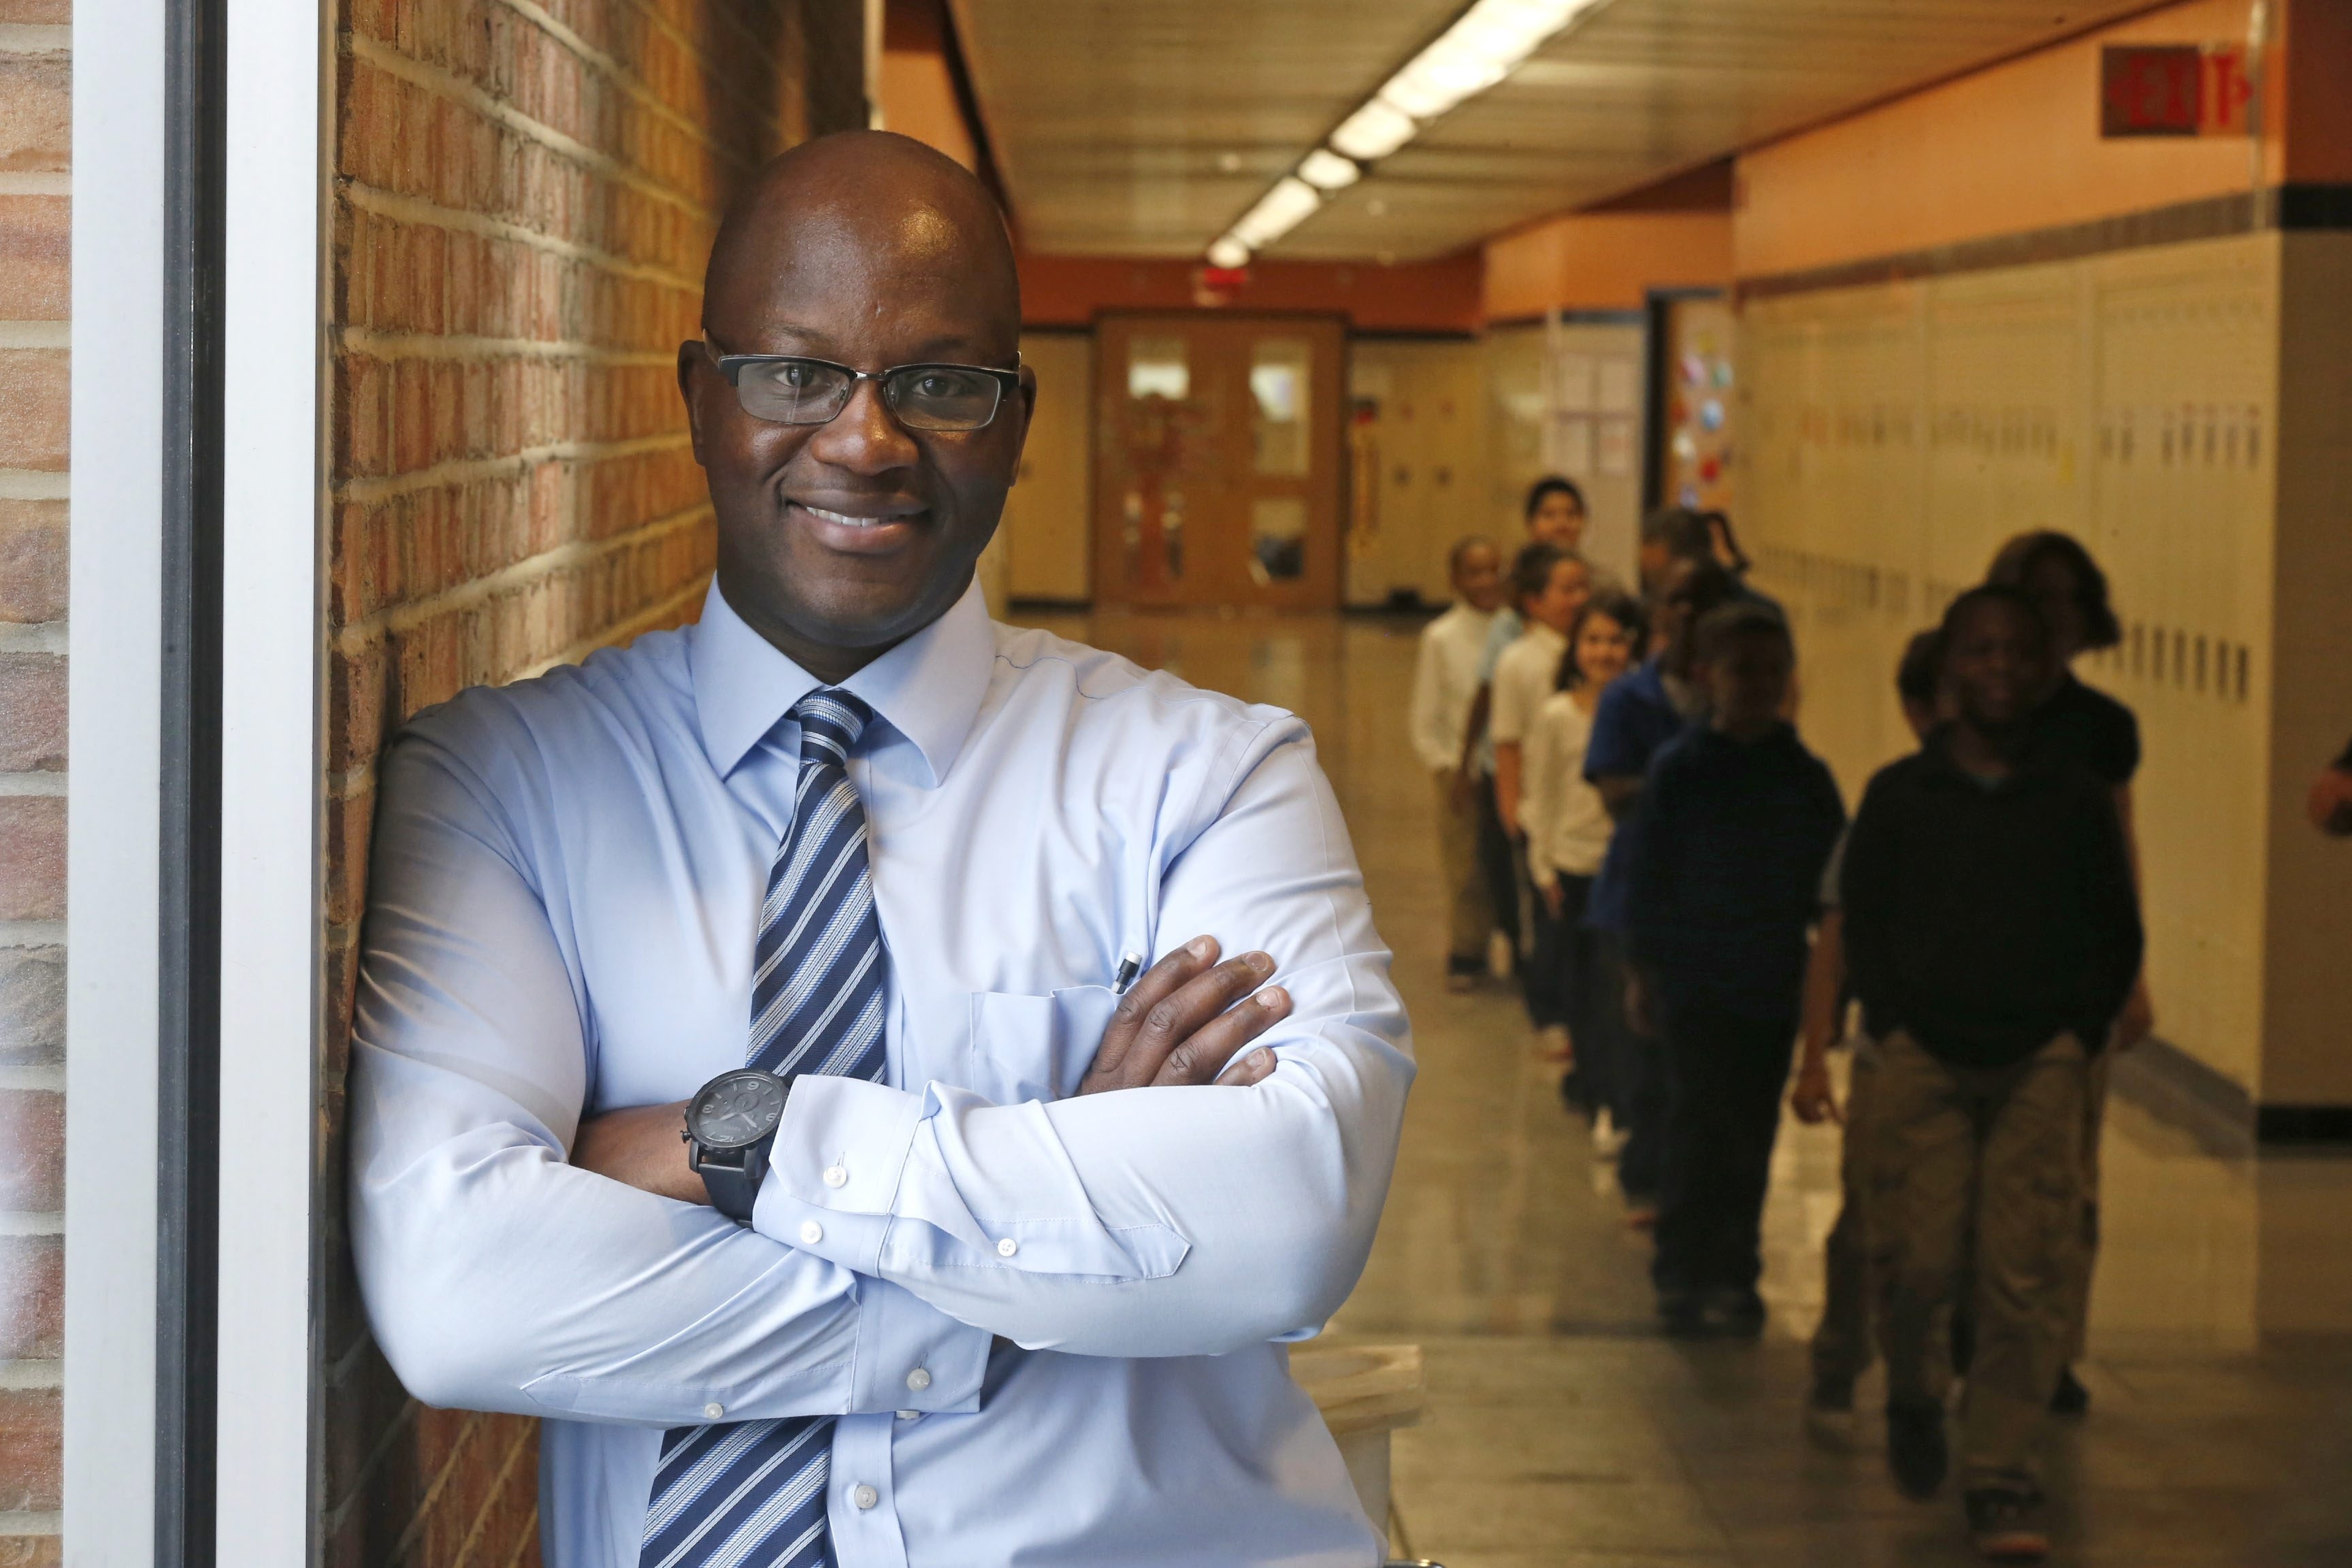 Principal Gregory D. Mott stresses teamwork by teachers and strong support for students at Grabiarz School of Excellence.